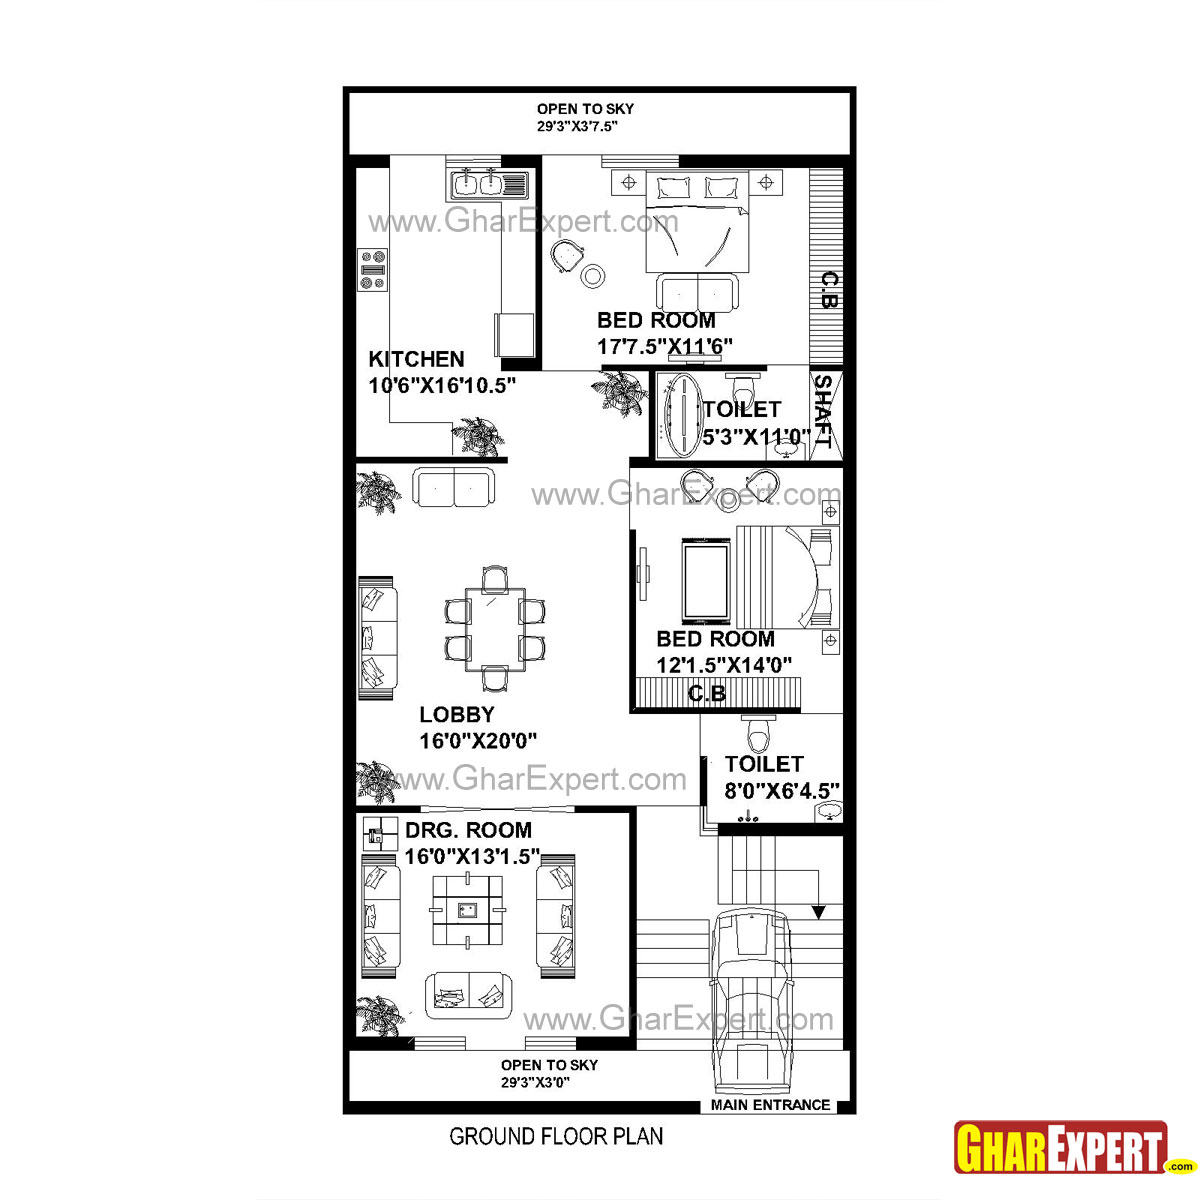 House Plan For 15 Feet By 50 Feet Plot Plot Size 83: GC 1310 Plan House Plan For 30 Feet By 60 Feet Plot (Plot